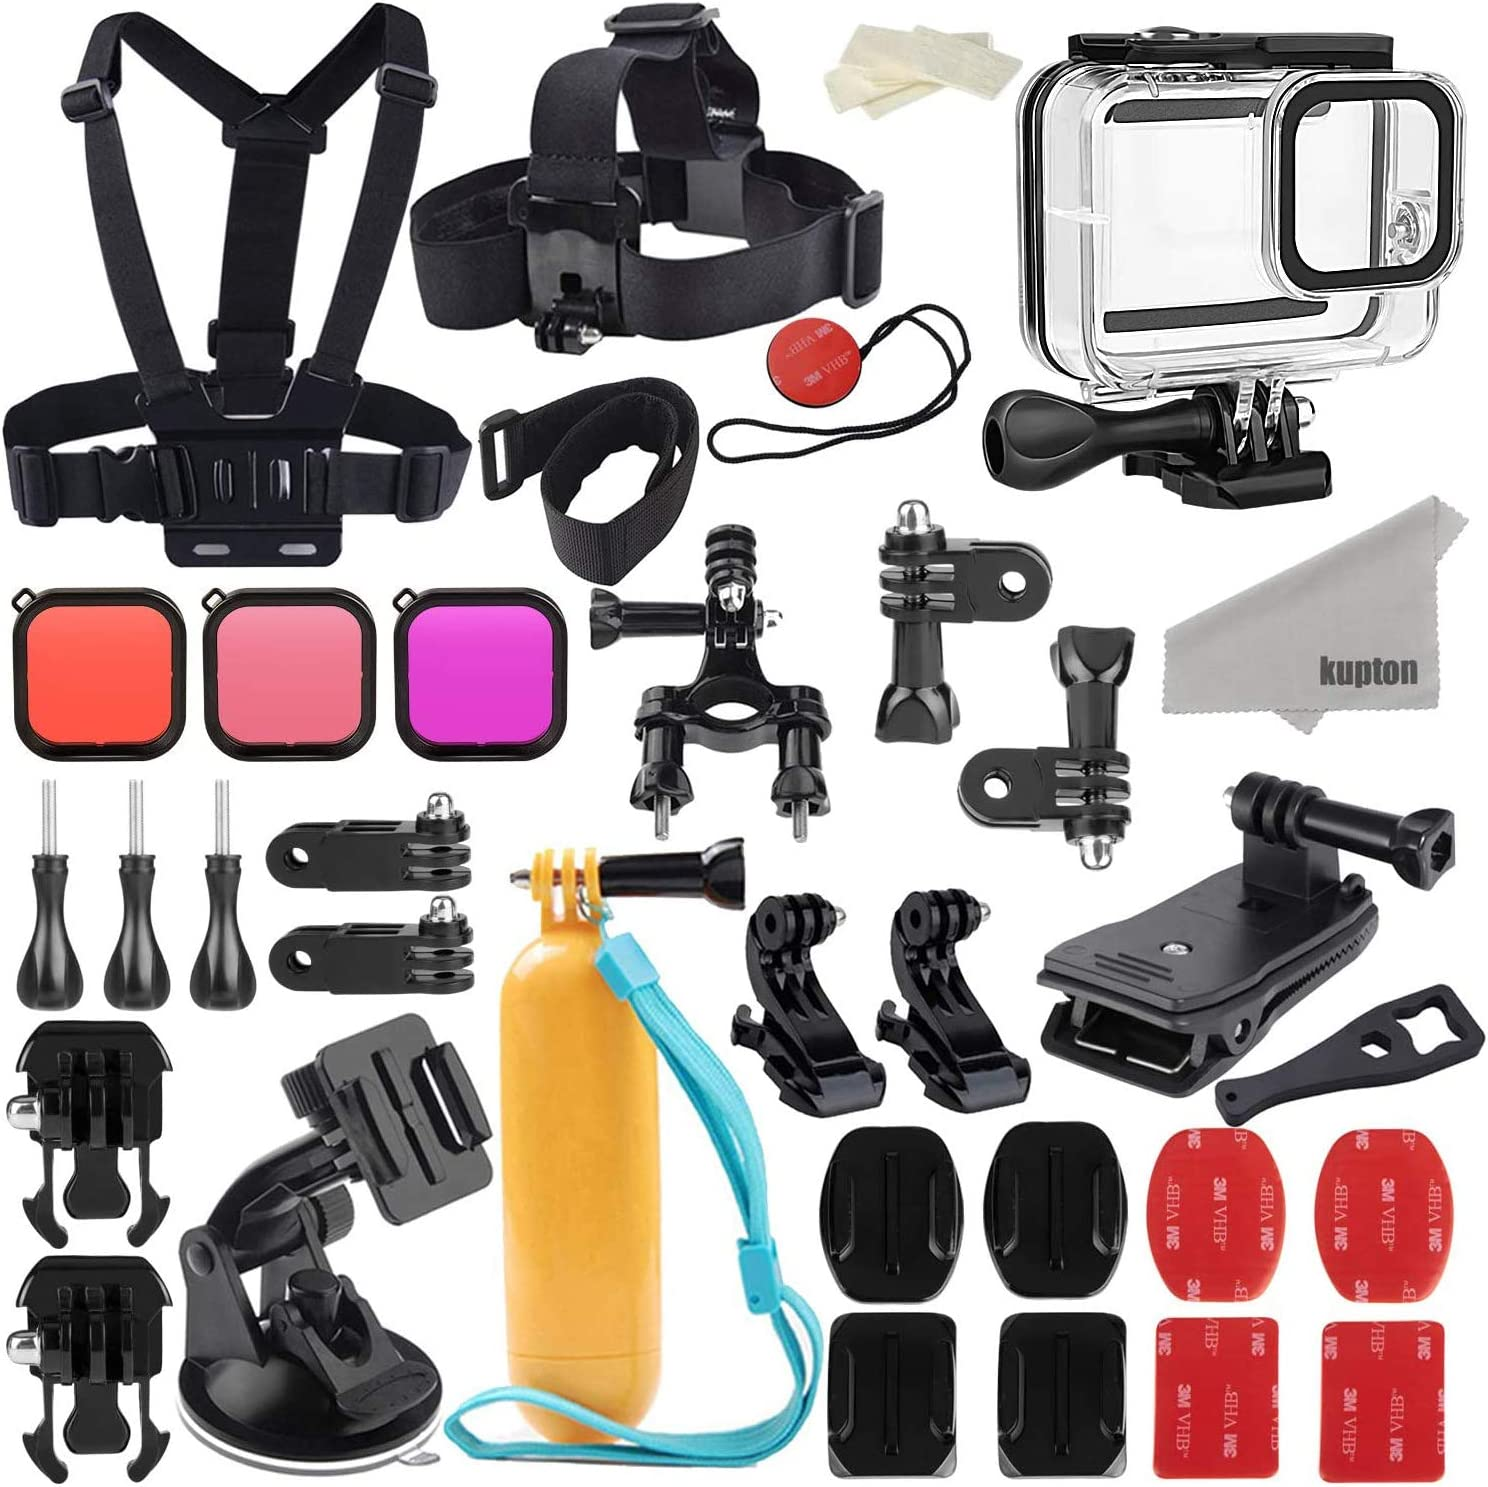 Kupton Accessories Kit Bundle Compatible with GoPro Hero 10 Black,  Waterproof Housing + Filters + Head Chest Strap + Suction Cup Mount + Bike  Mount +